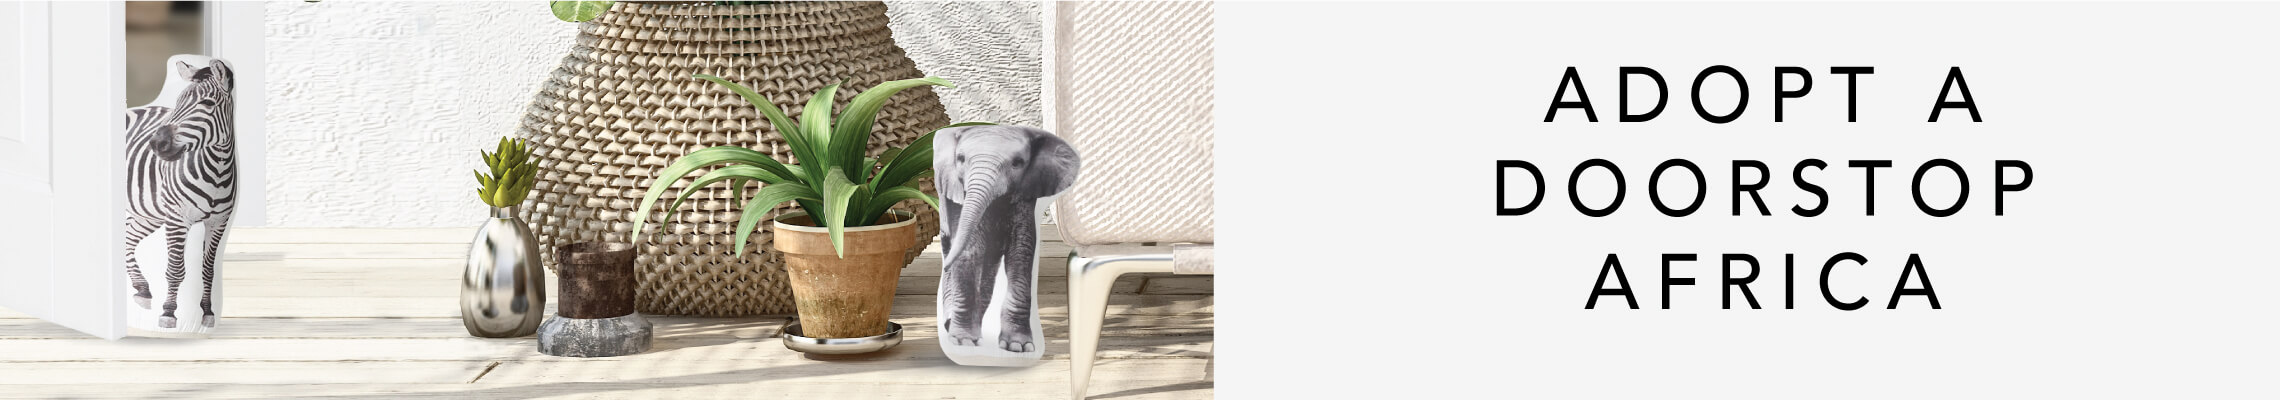 Shop our Adopt A Doorstop Africa collection!